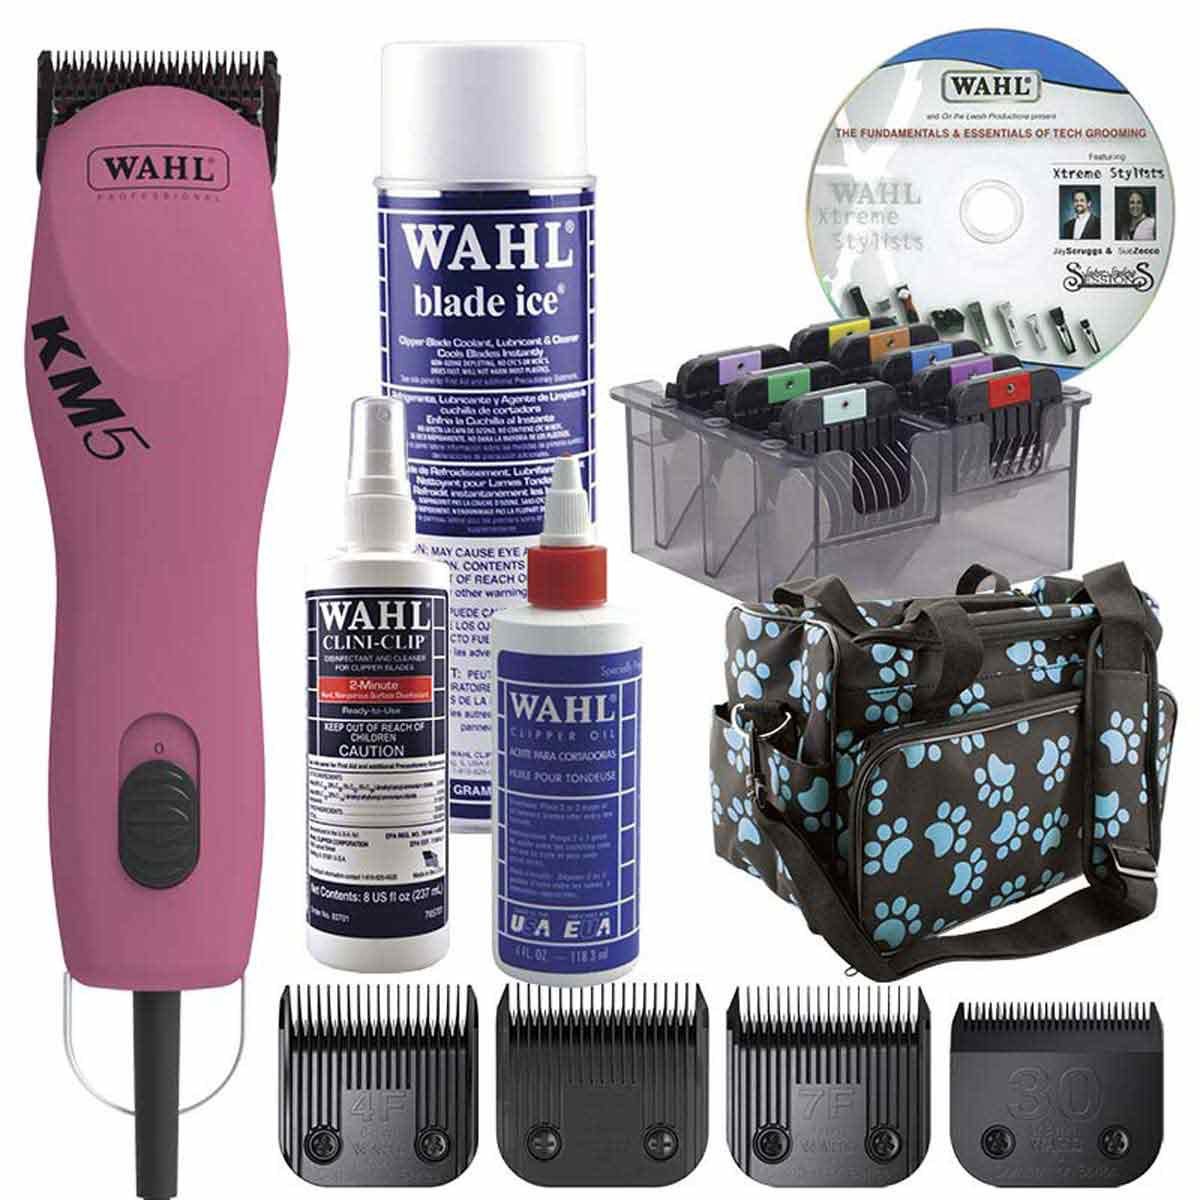 Wahl KM5 Grooming Student Kit includes Blade Ice, Clini-Clip, Clipper Oil, and more!